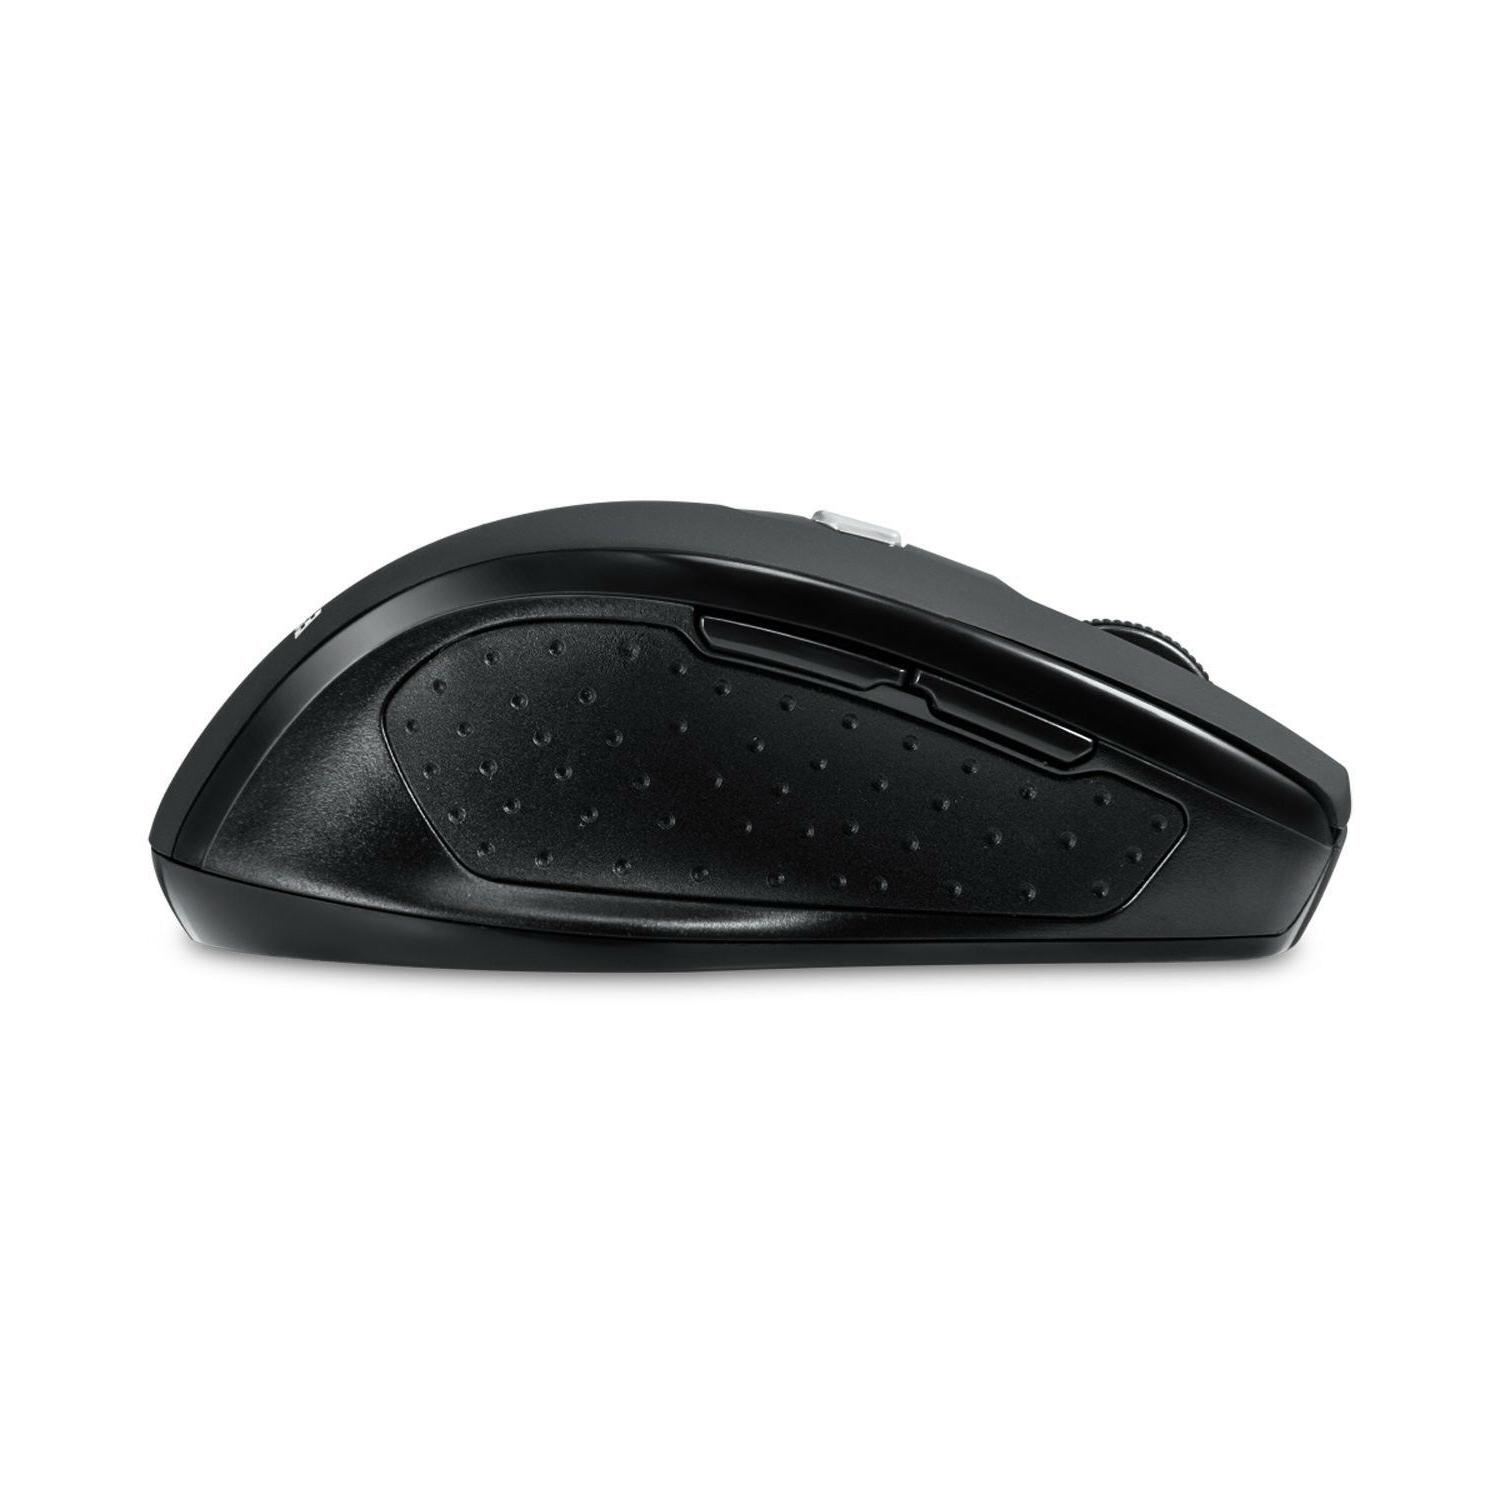 Wireless Mouse Combo Laptop Desktop New